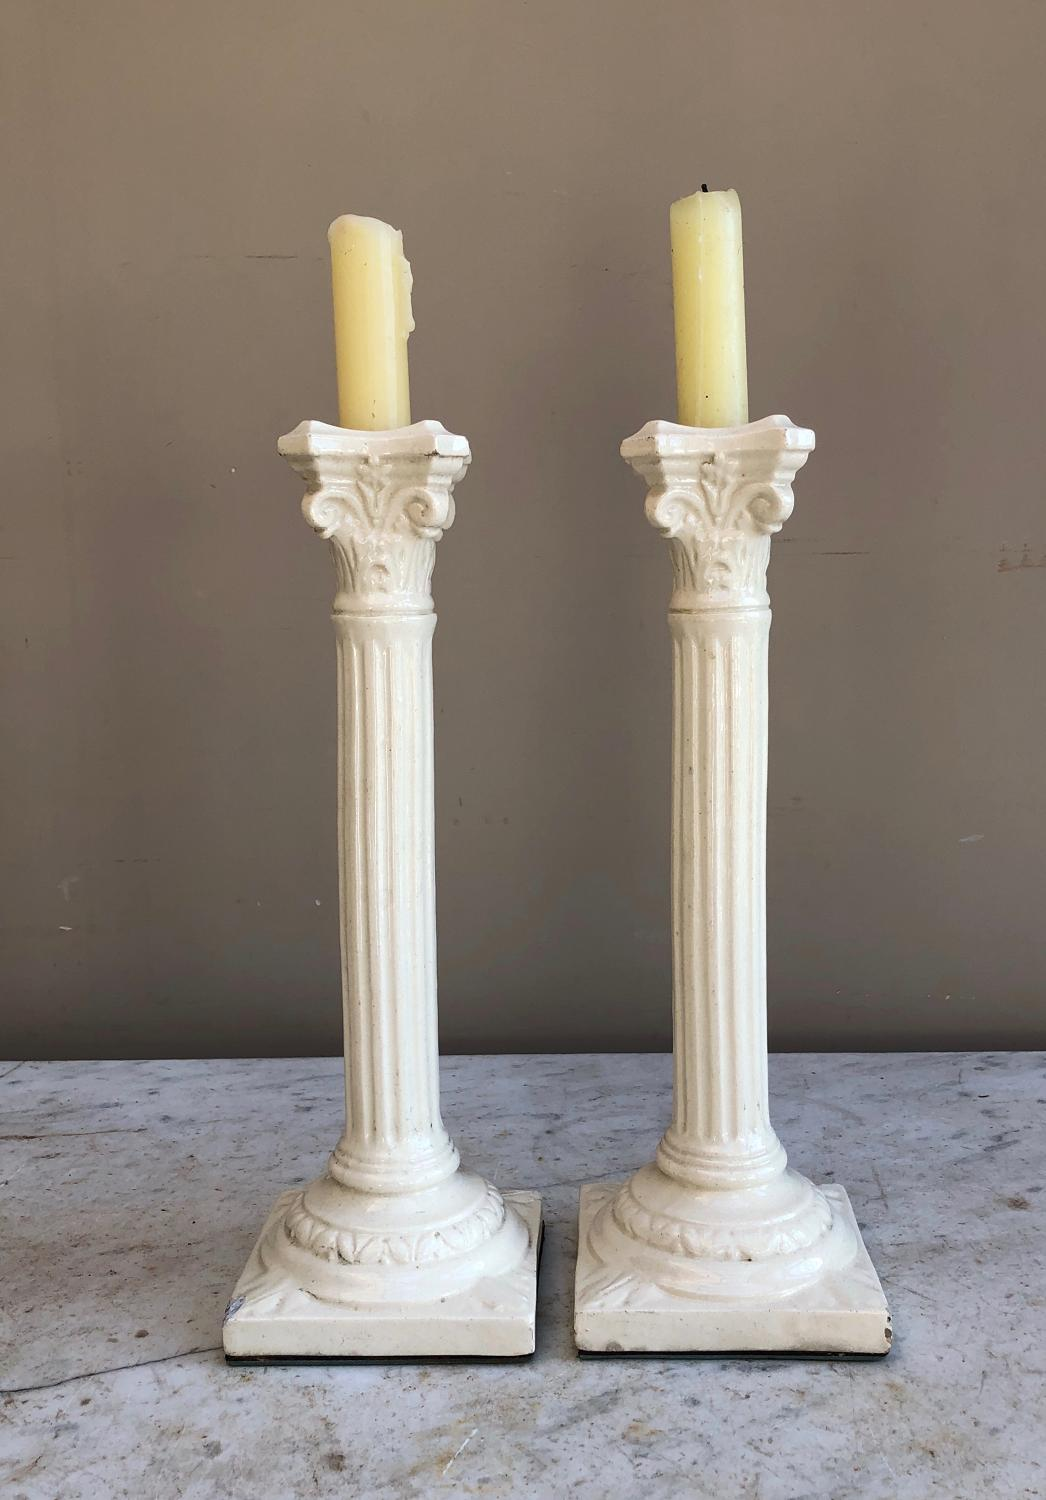 Pair of Antique Tall White Ironstone Column Candlesticks